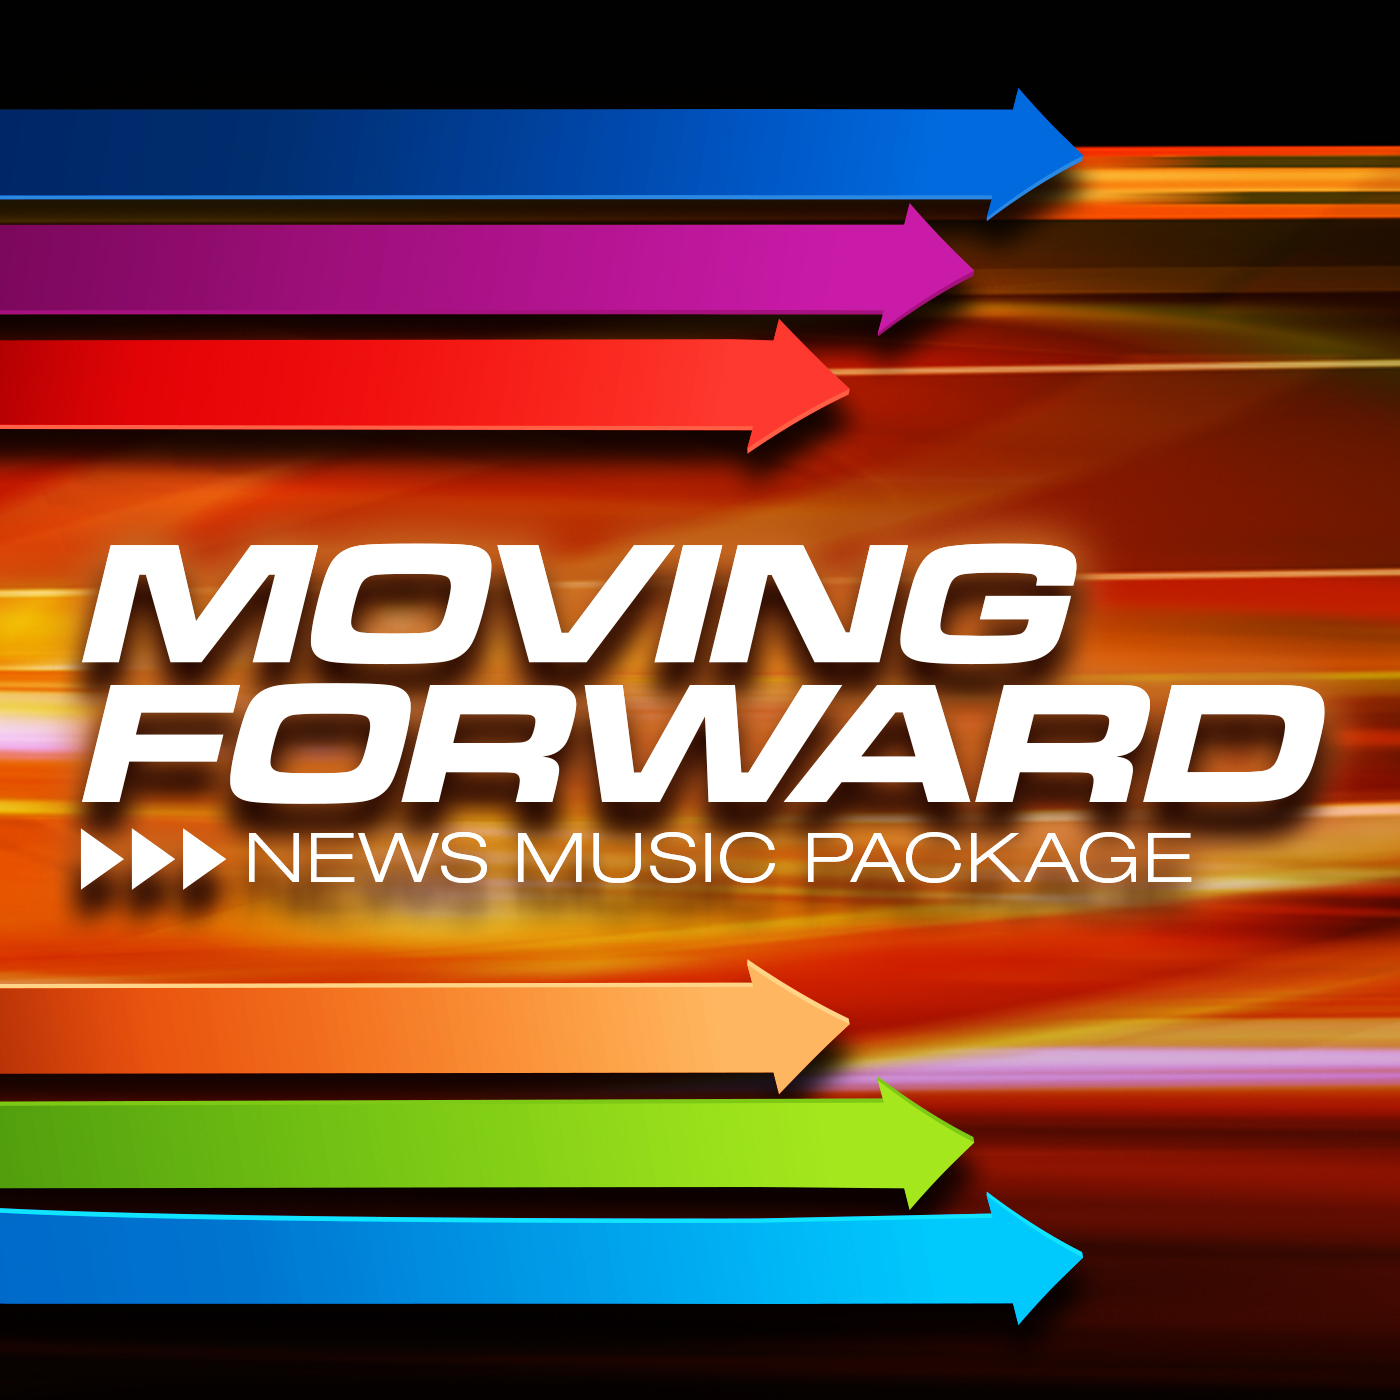 Moving Forward News Music Package